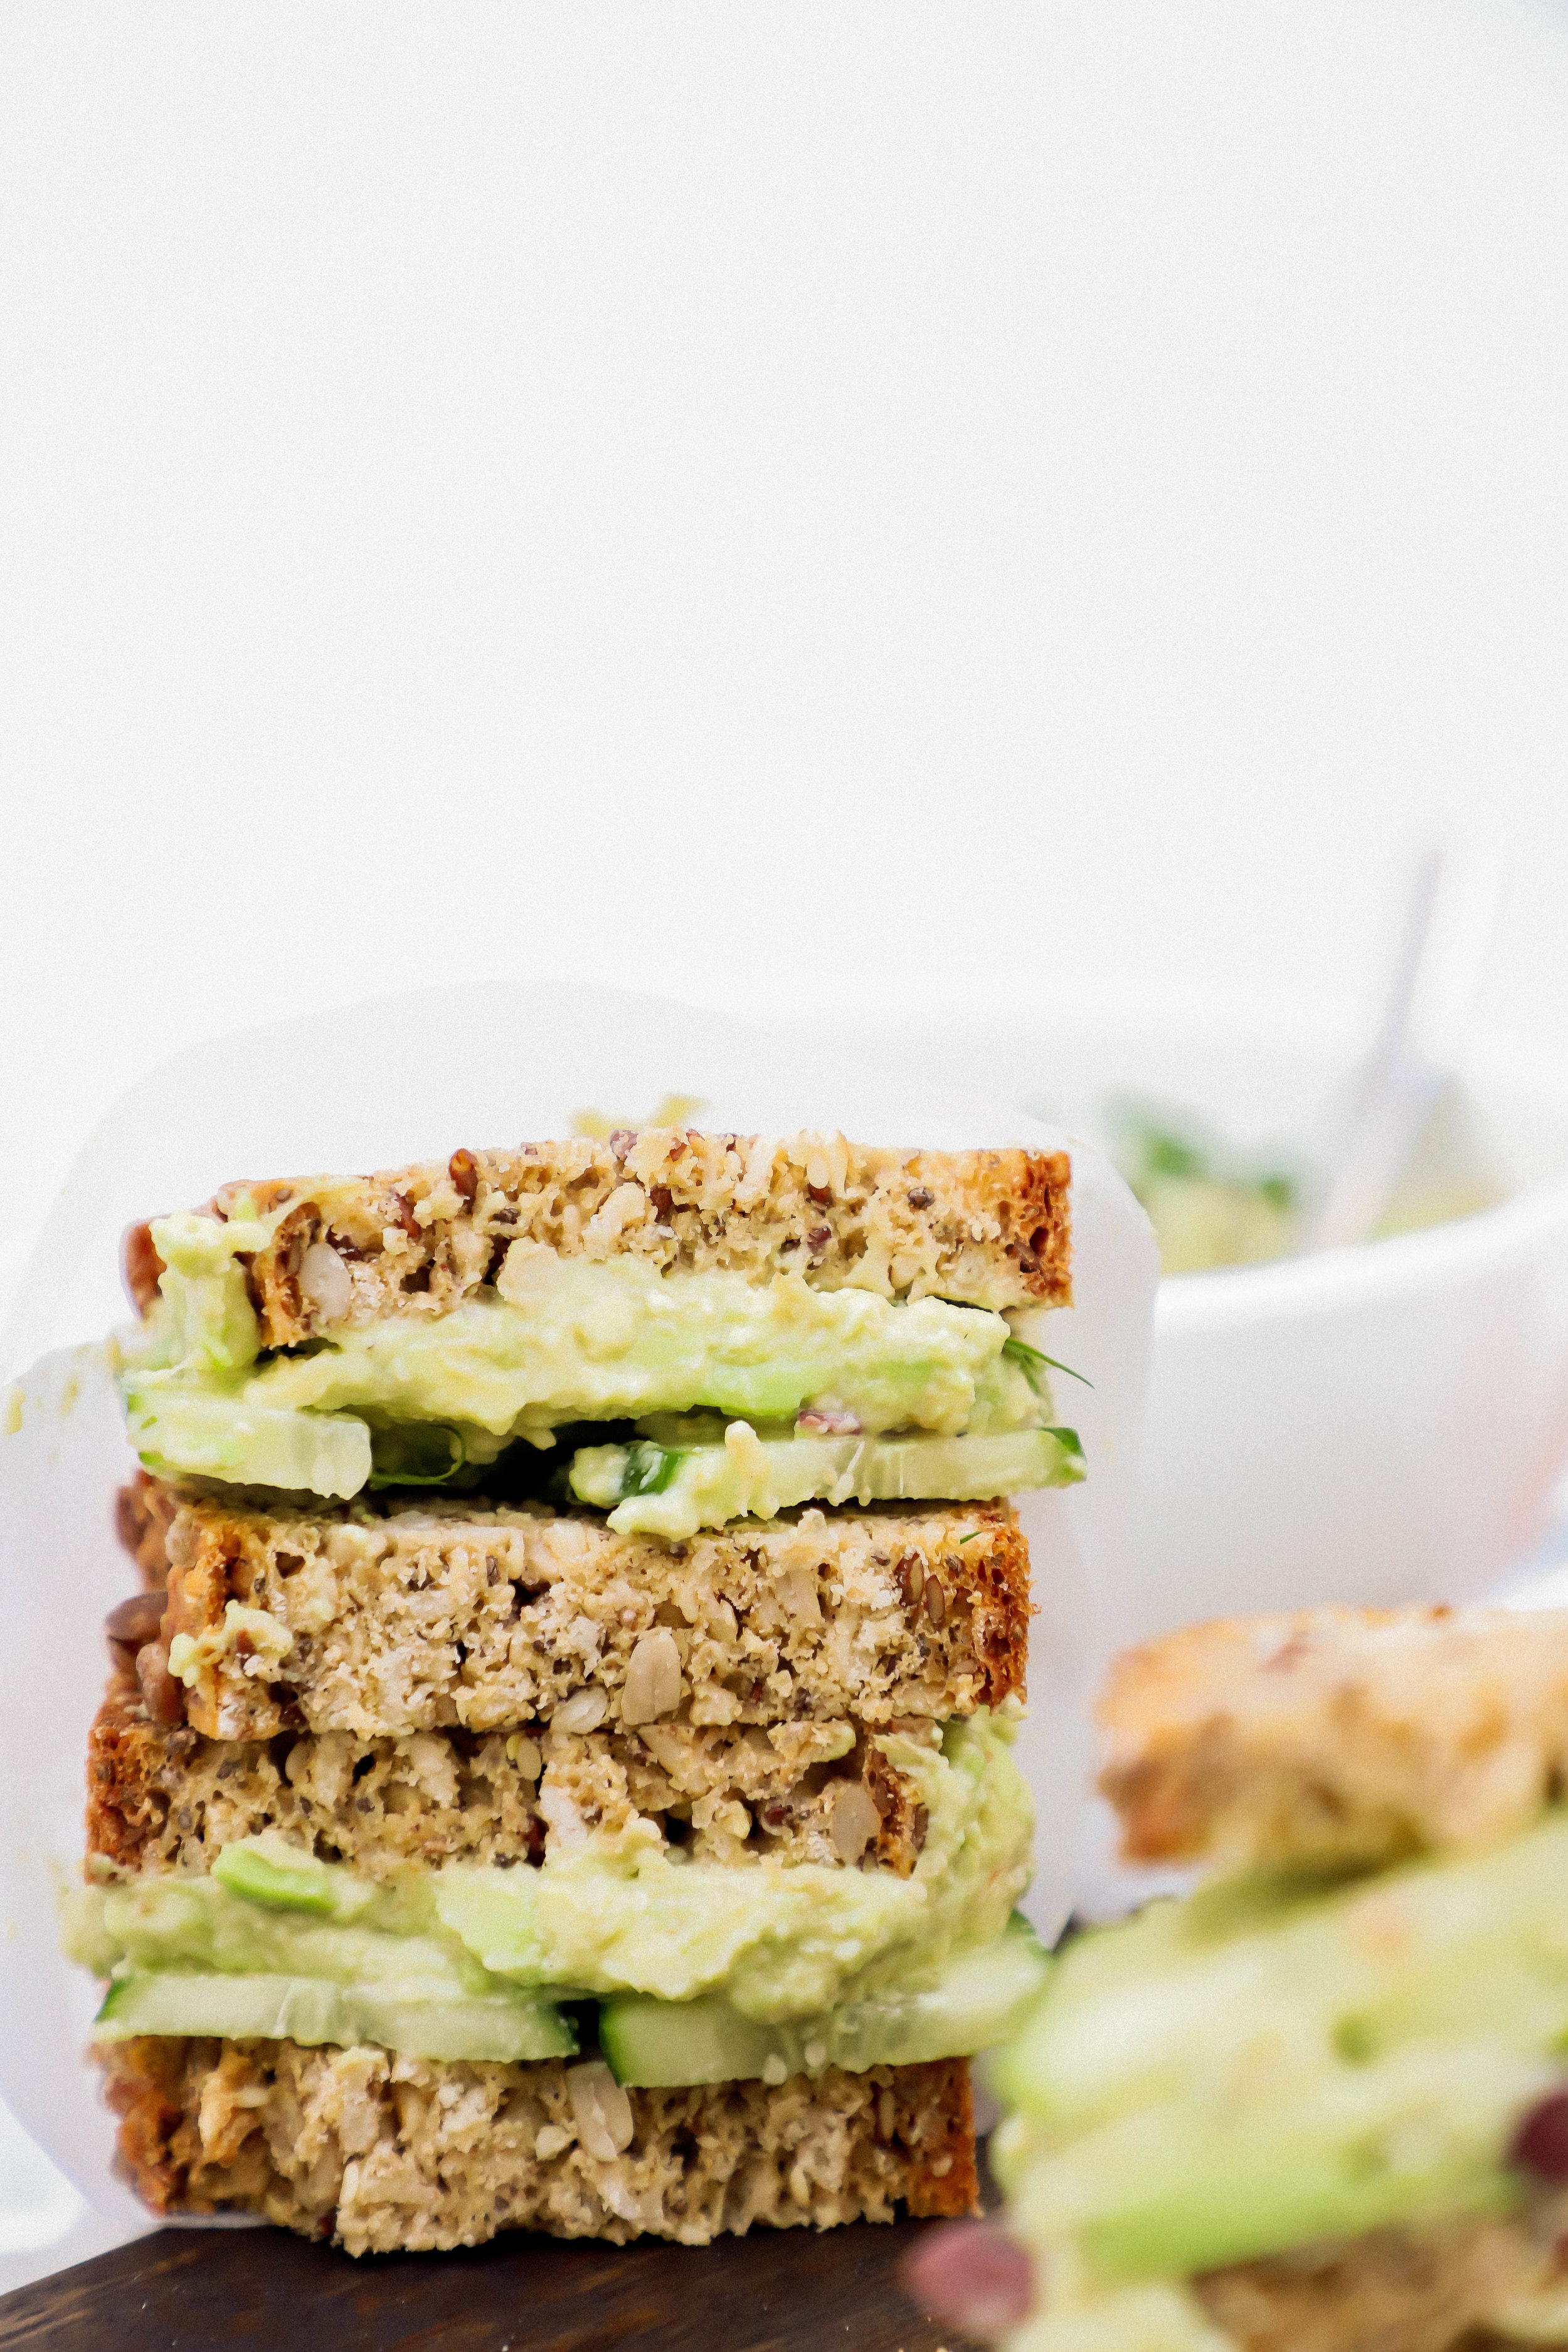 Vegan and gluten-free avocado smash sandwiches